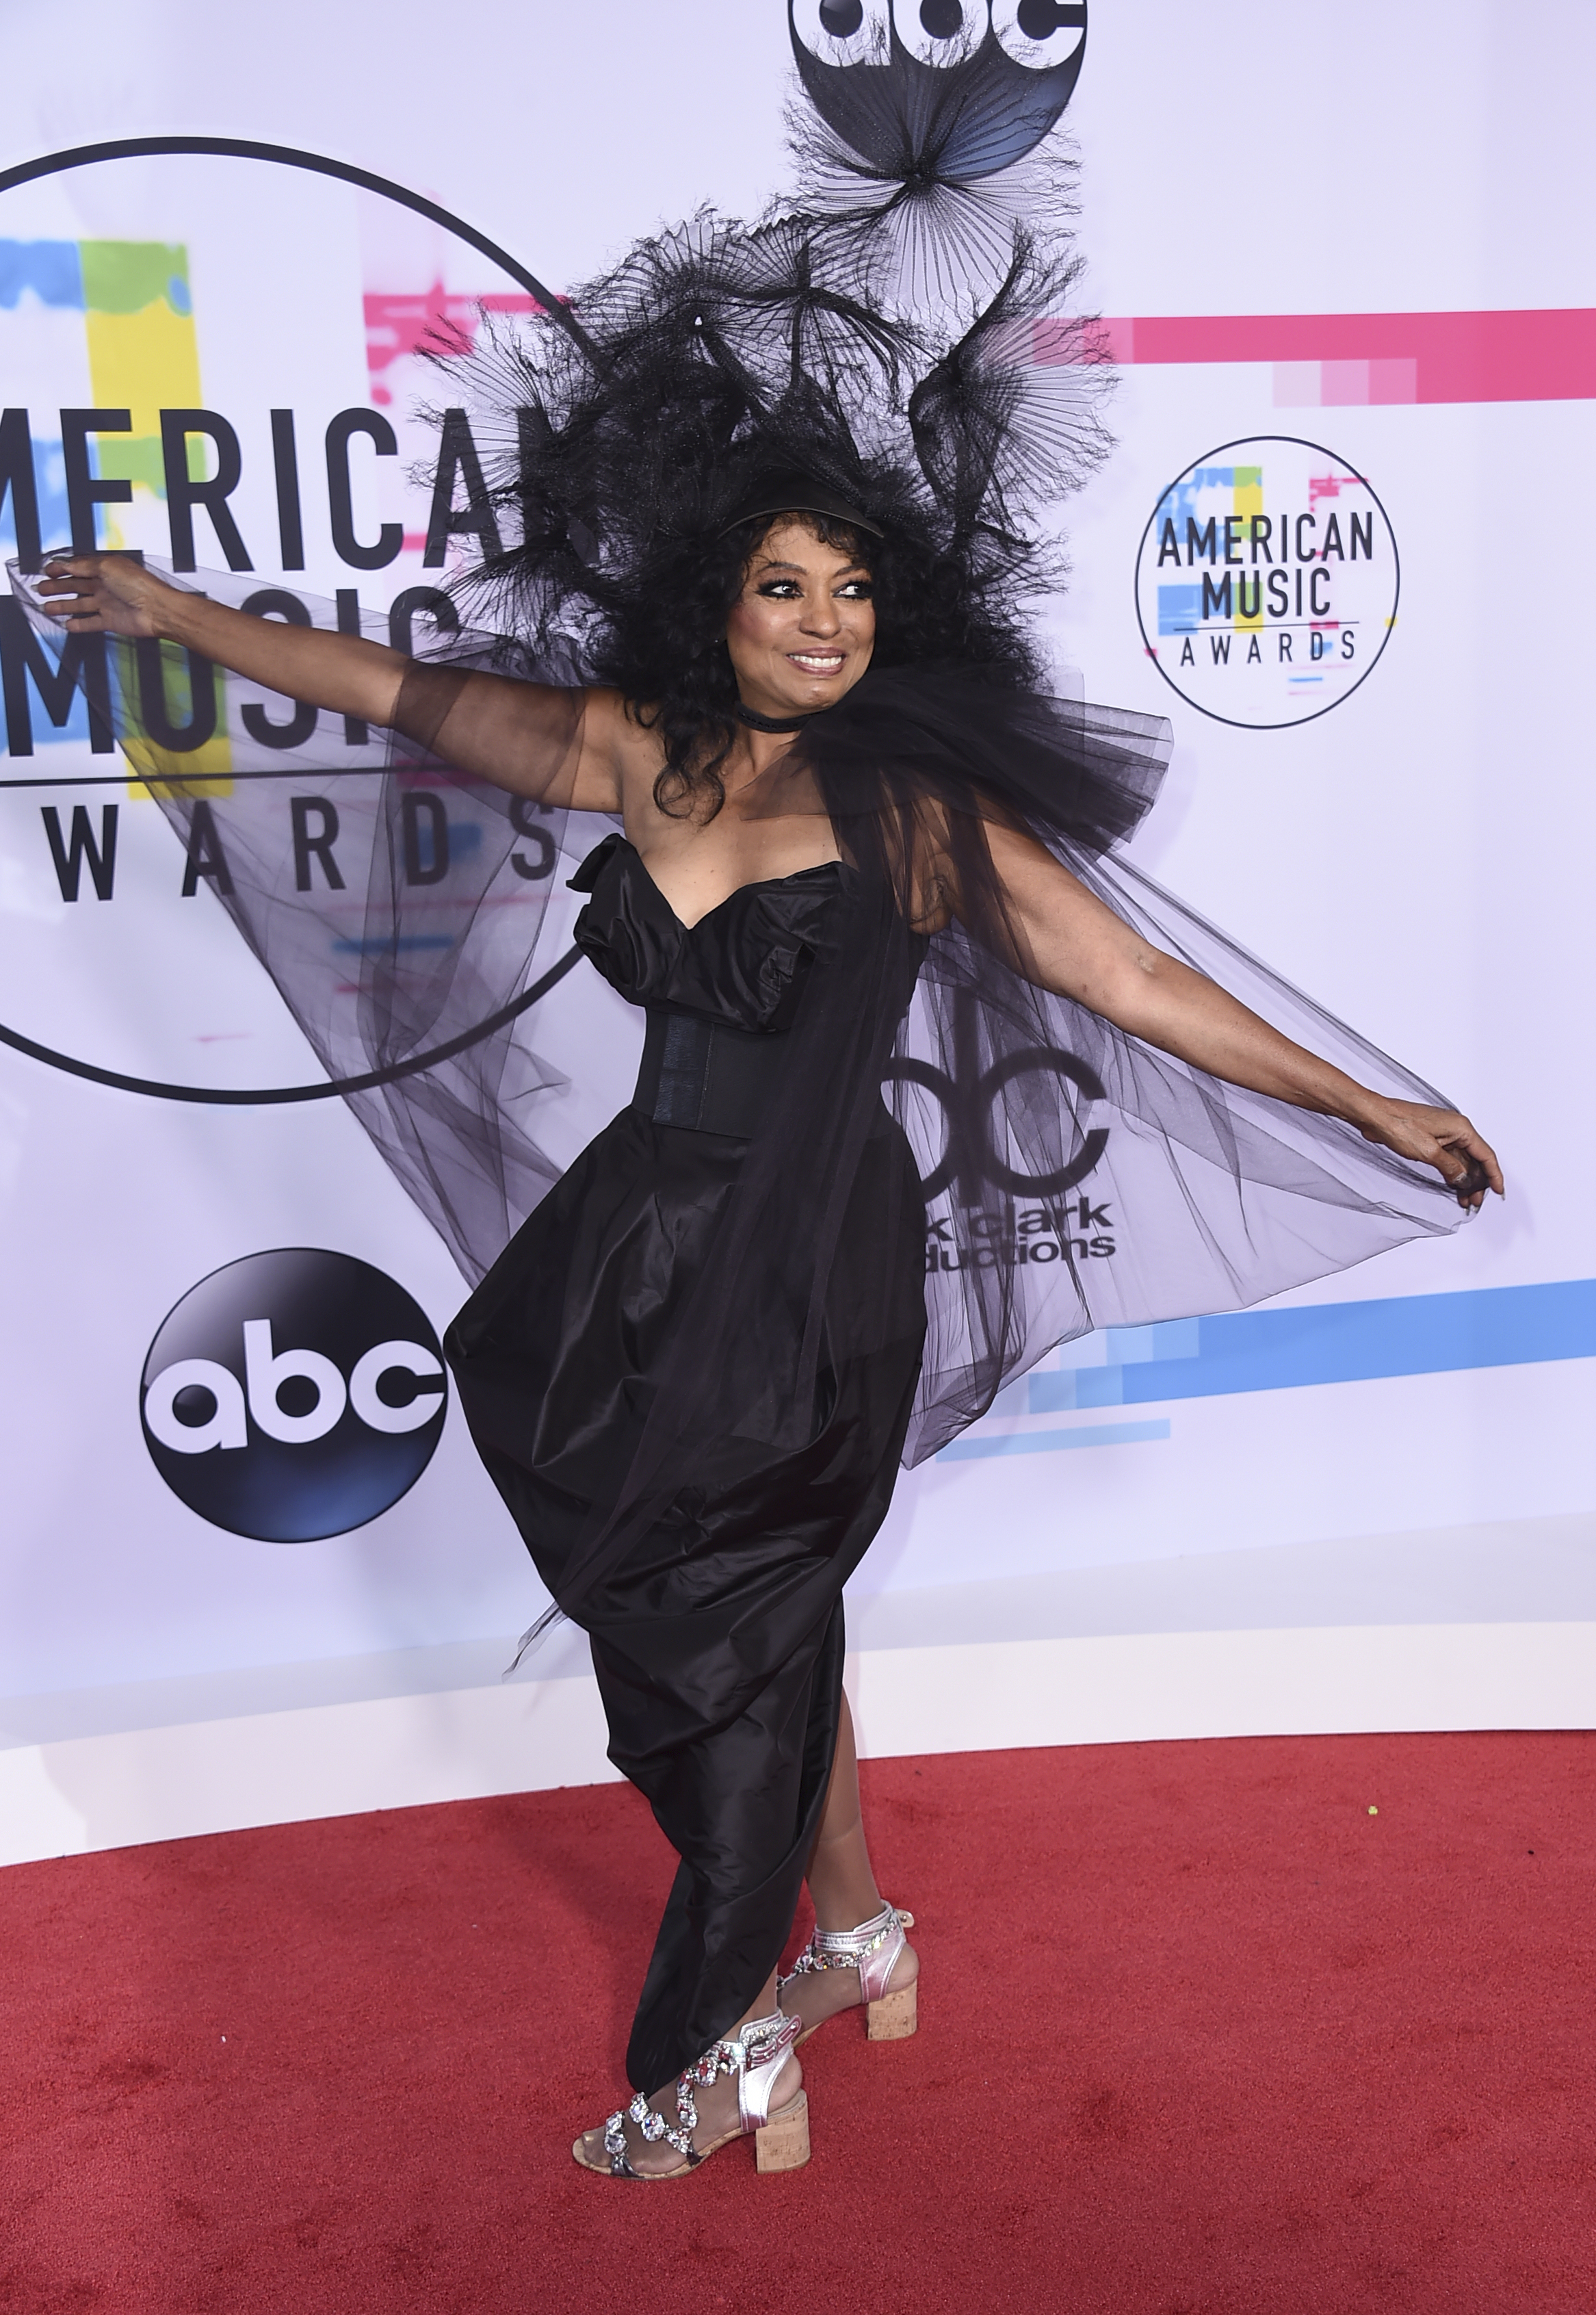 <div class='meta'><div class='origin-logo' data-origin='none'></div><span class='caption-text' data-credit='Jordan Strauss/Invision/AP'>Diana Ross arrives at the American Music Awards at the Microsoft Theater on Sunday, Nov. 19, 2017, in Los Angeles.</span></div>